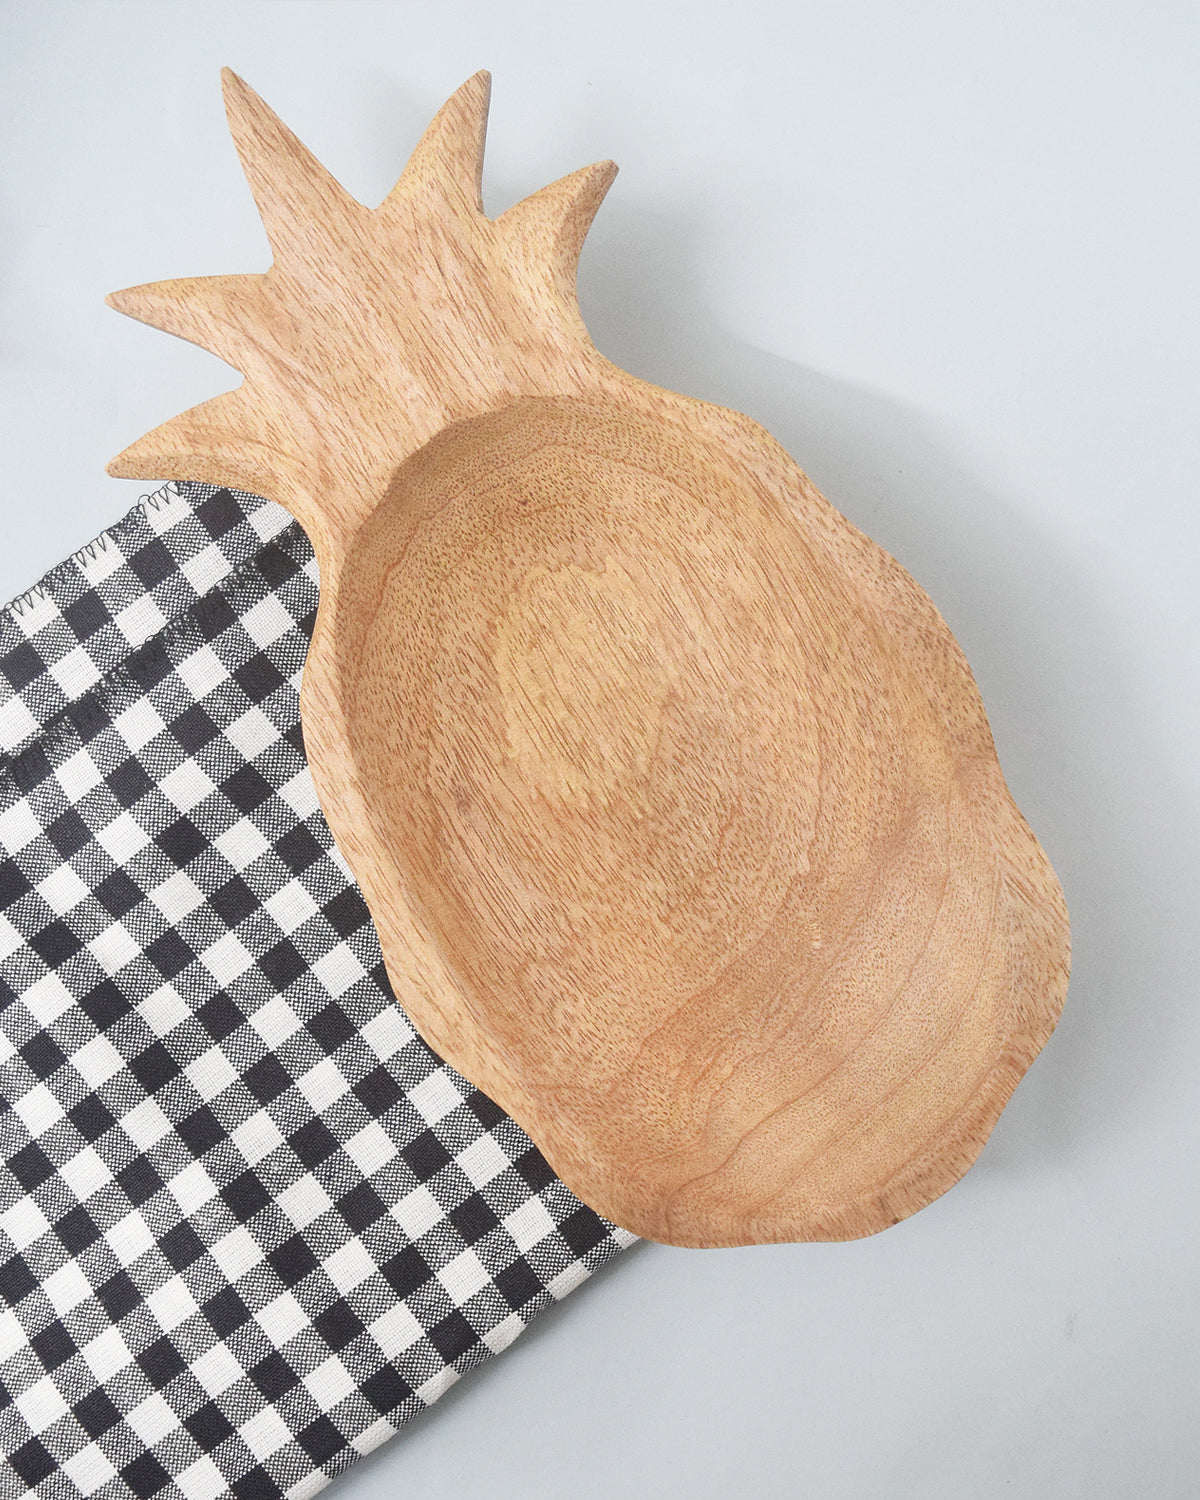 Pineapple Multipurpose Wooden Tray